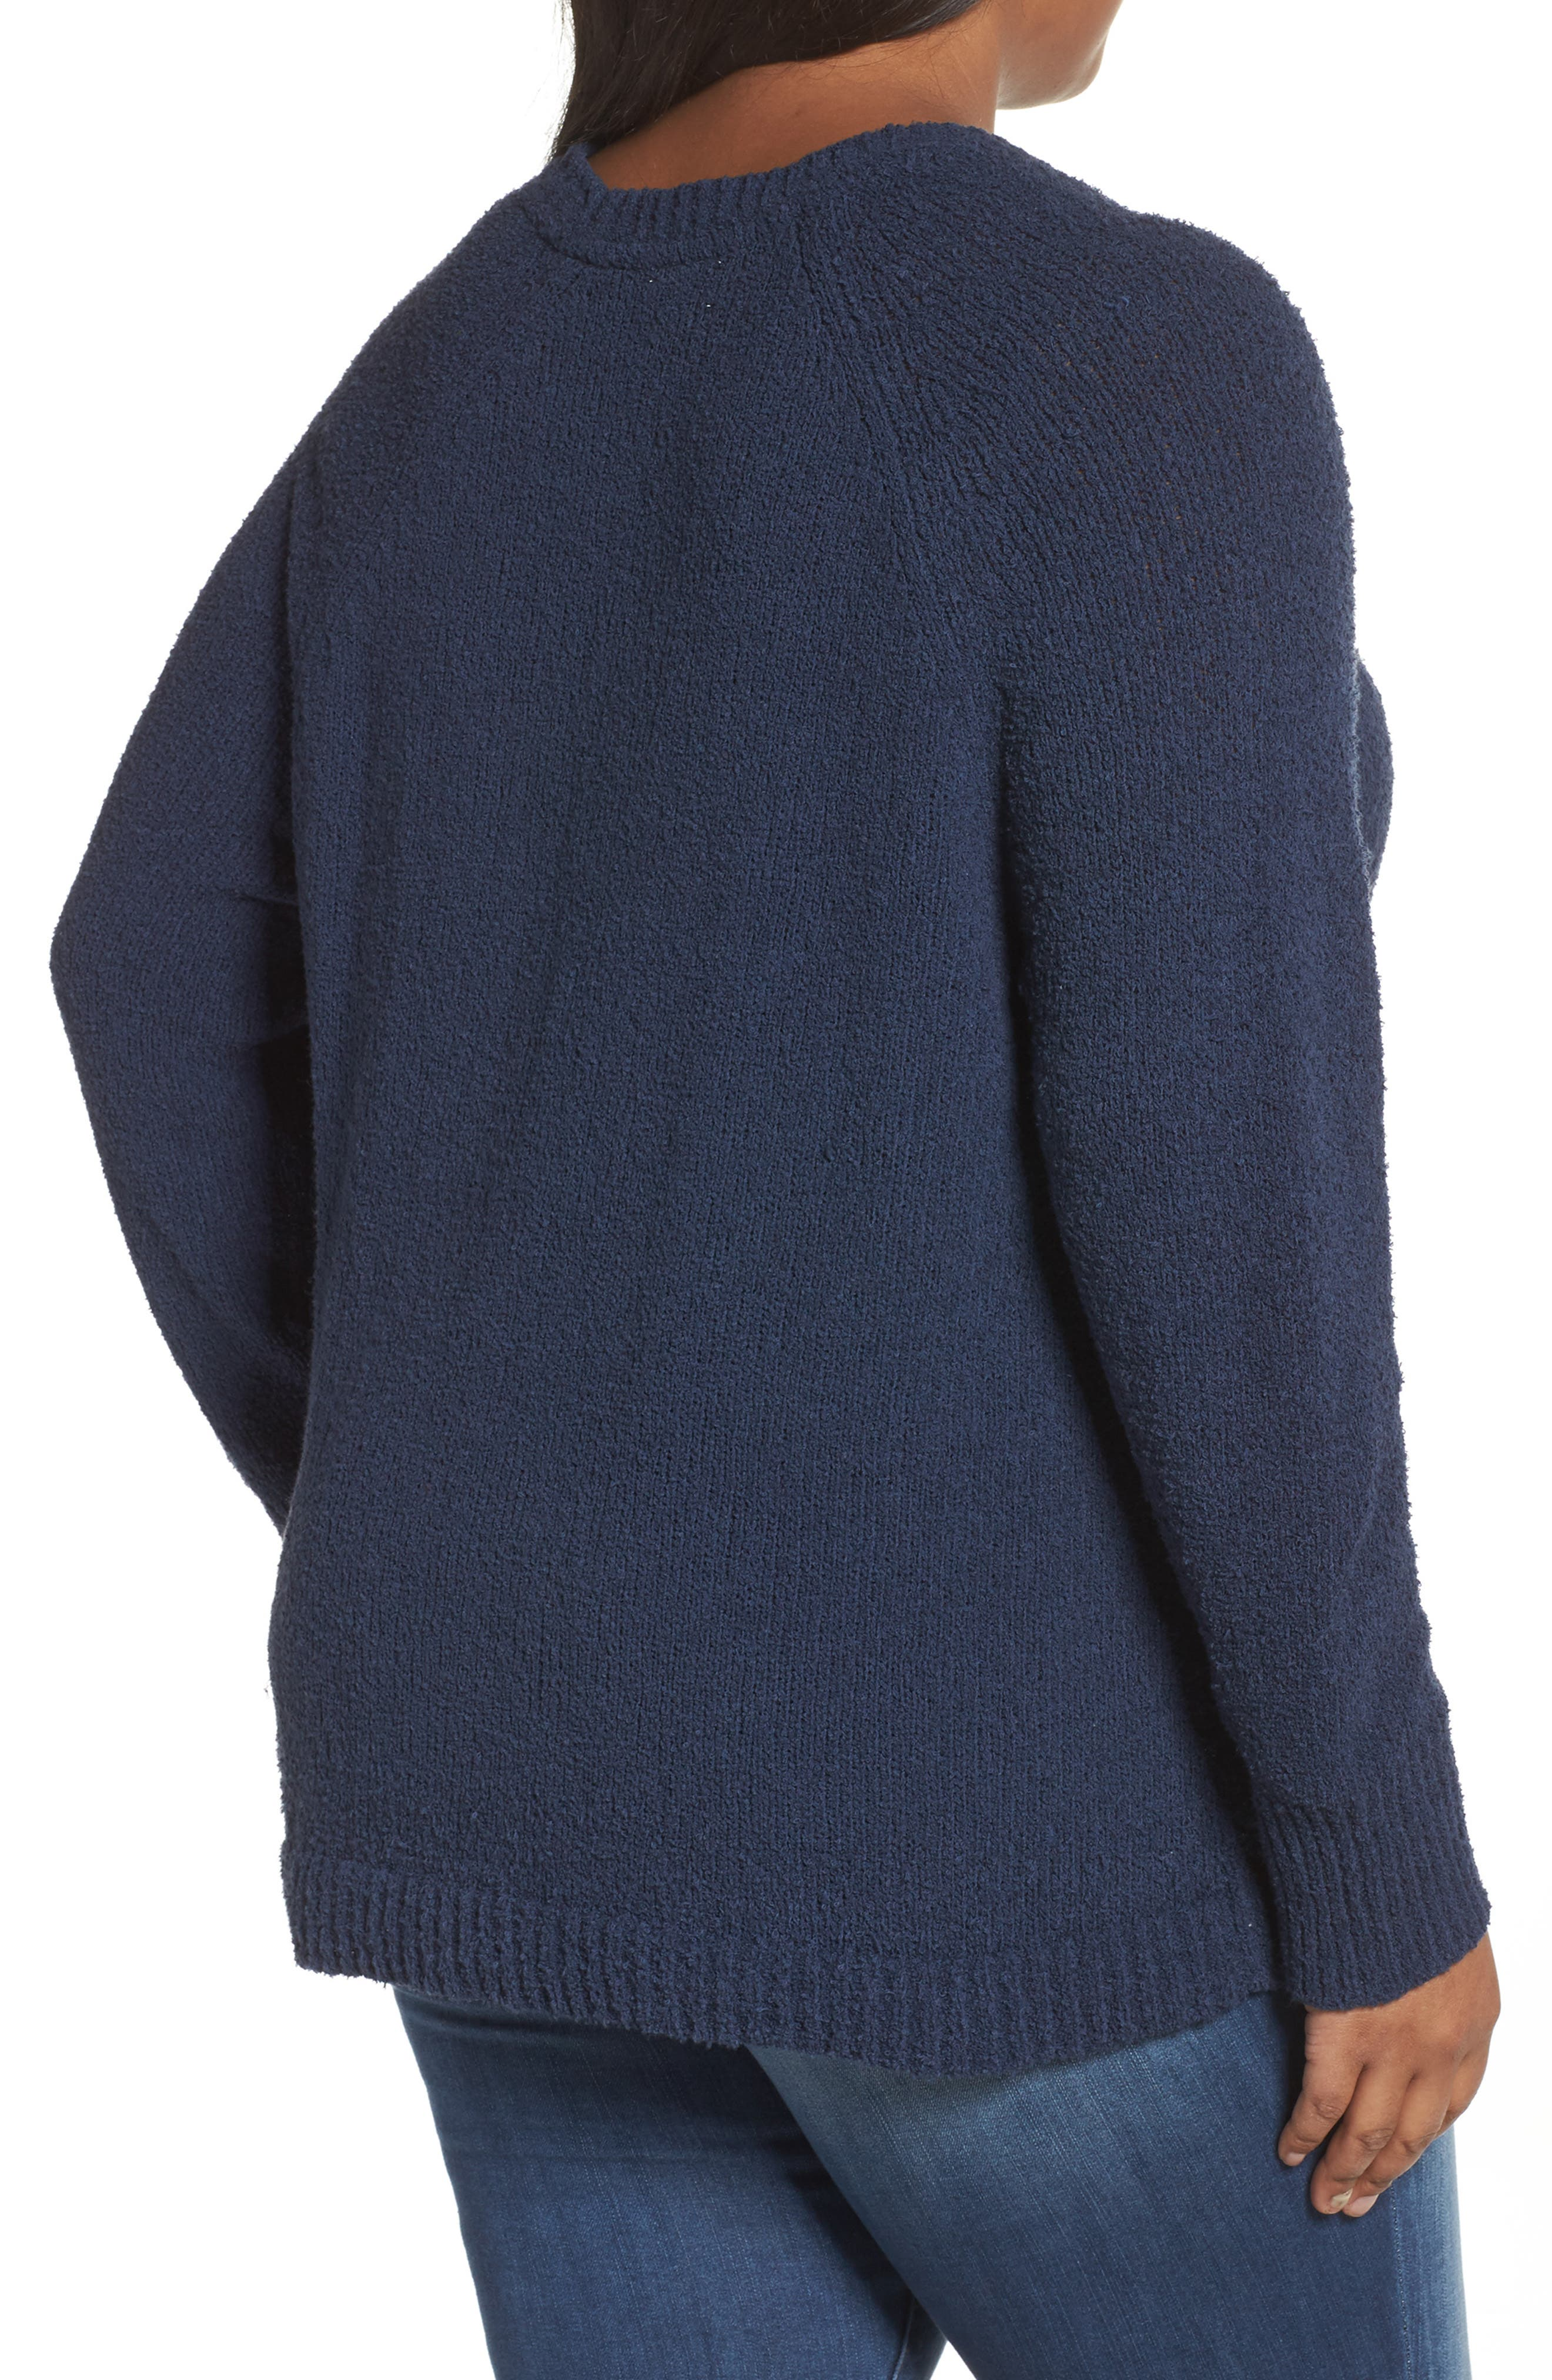 Relaxed Crewneck Sweater,                             Alternate thumbnail 6, color,